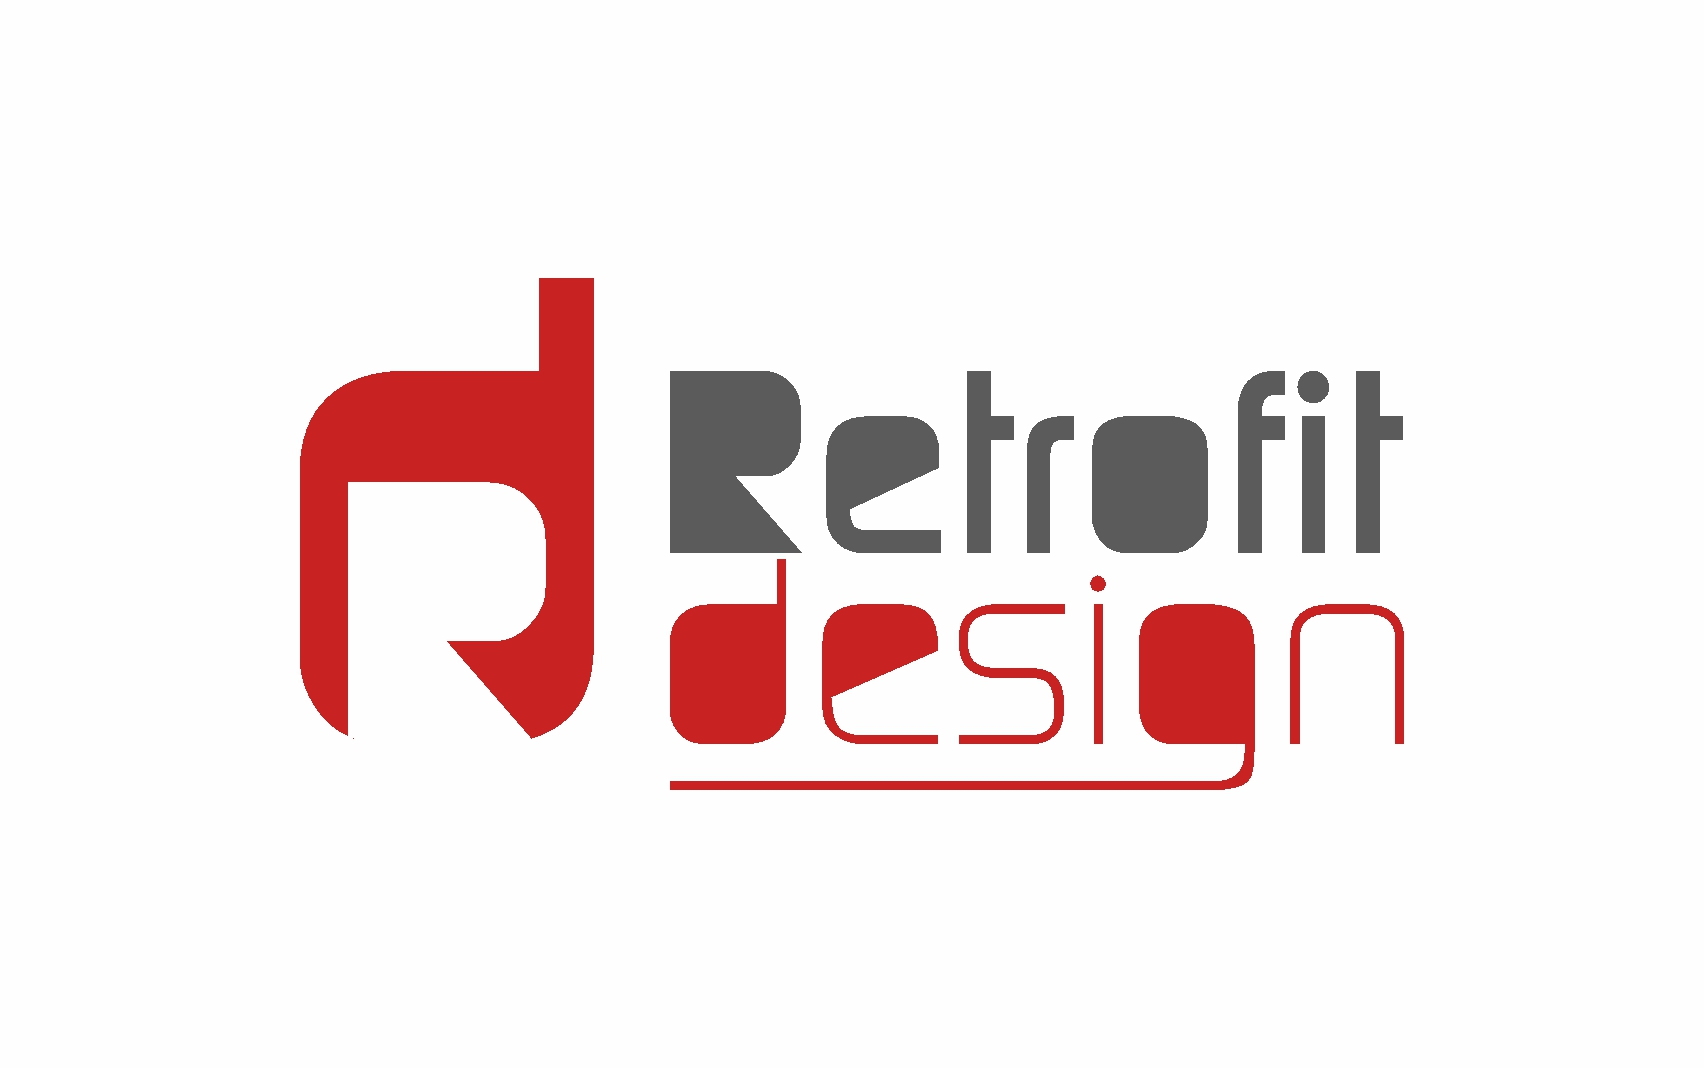 Logo Design by Amit Kaushik - Entry No. 204 in the Logo Design Contest Inspiring Logo Design for retrofit design.